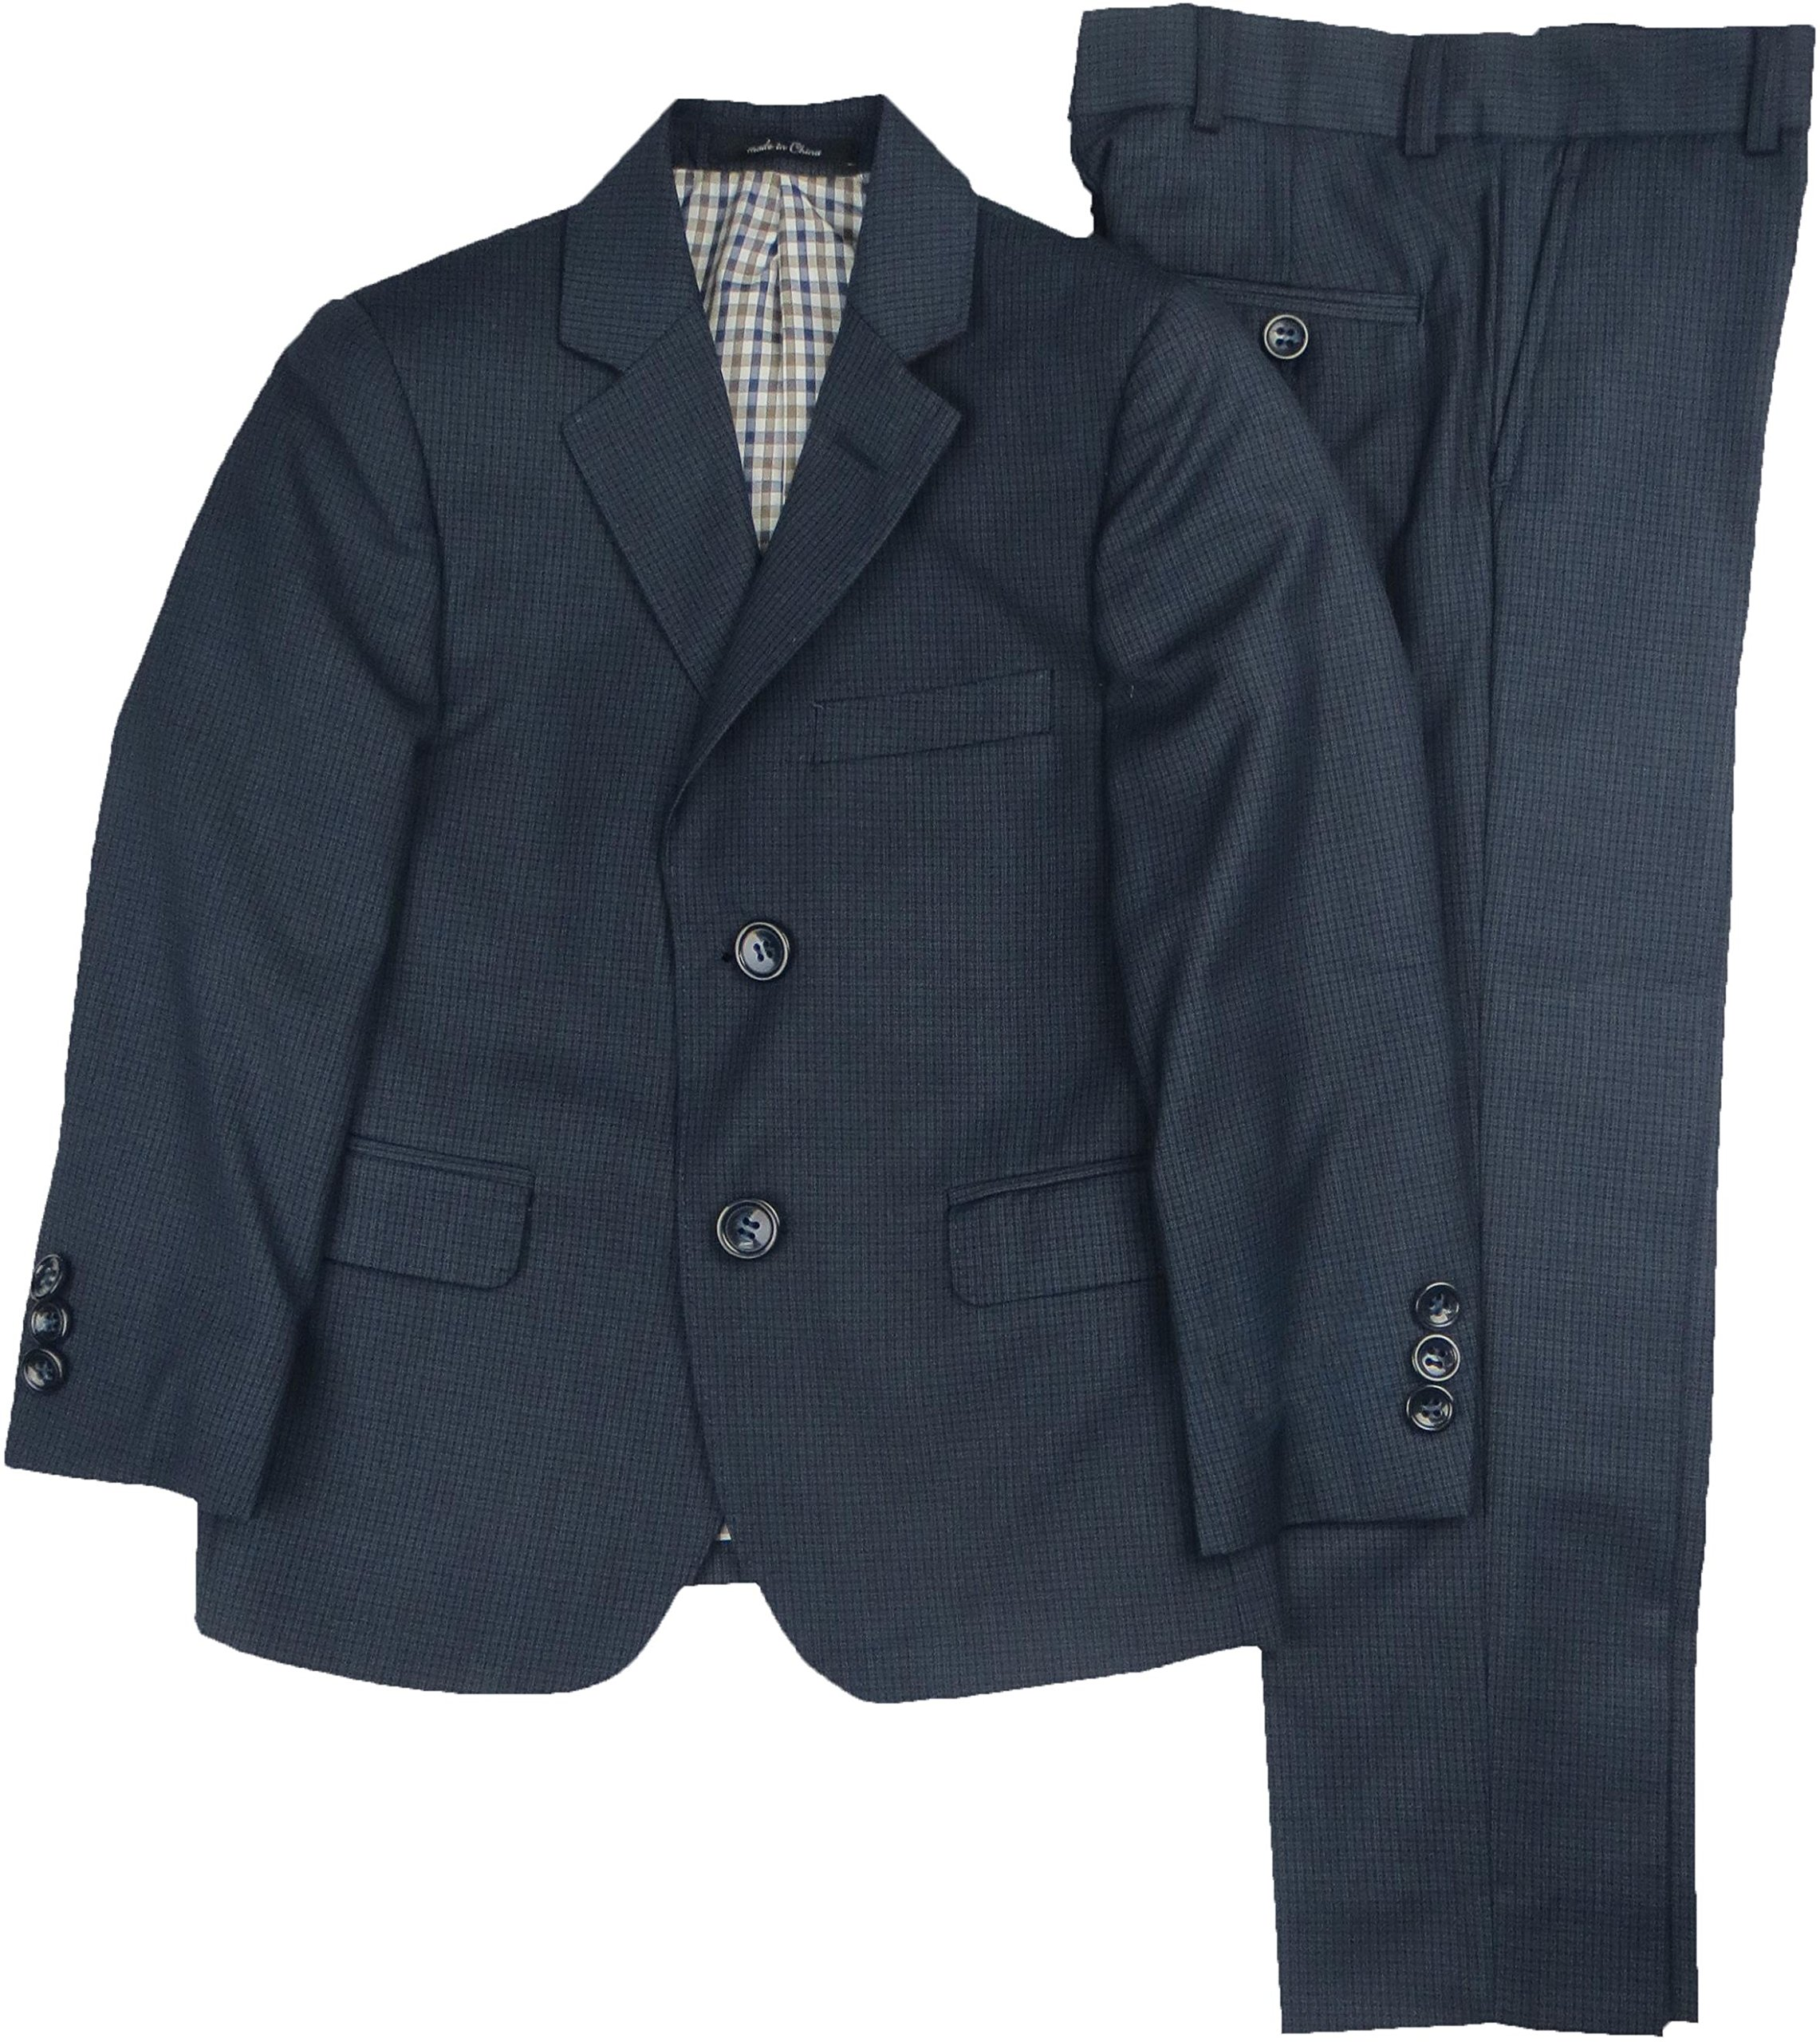 T.O. Collection Boys Suit (Slim, Regular & Husky Fit) - 1632-11 - Navy, 8 Husky by T.O. Collection